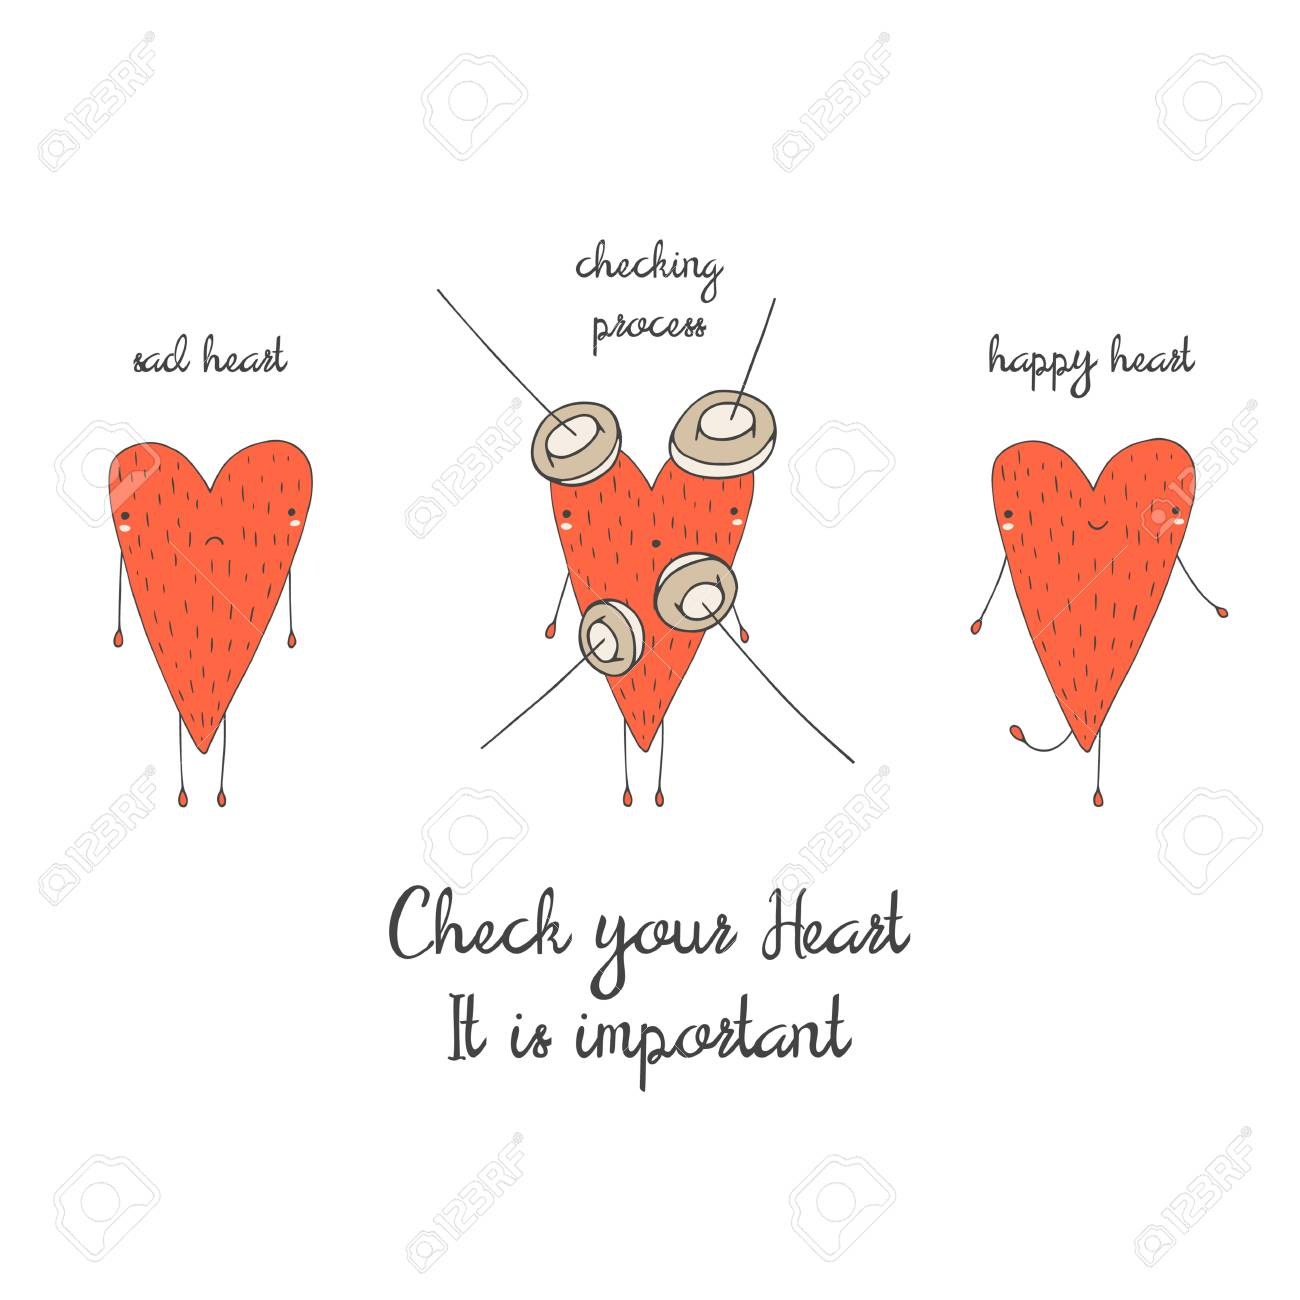 Cute hand drawn doodle card, brochure, poster with heart. Heart health background. Heart checking motivating postcard - 53897398